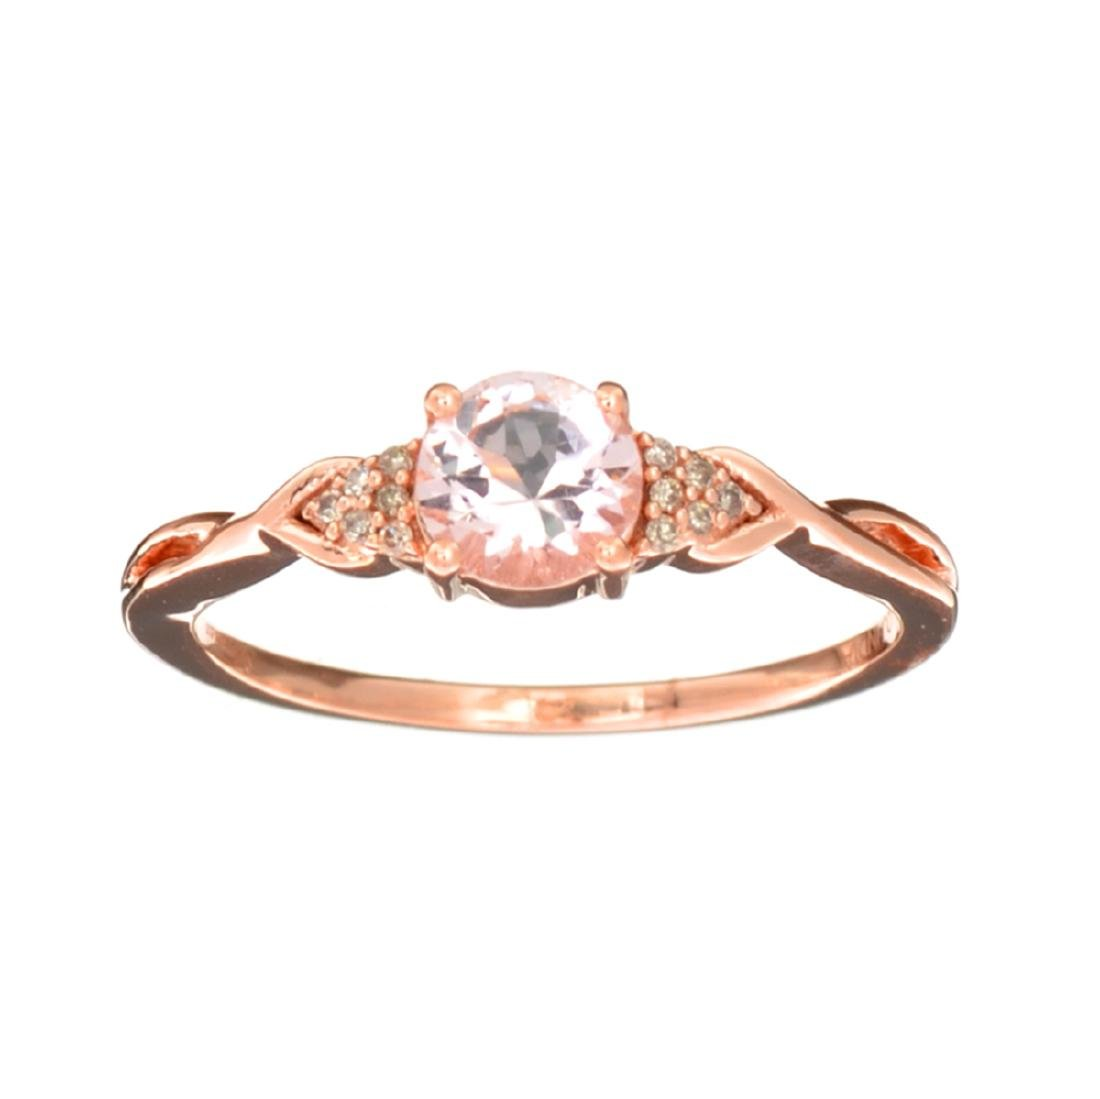 Designer Sebastian 14 KT Rose Gold, Round Cut Morganite